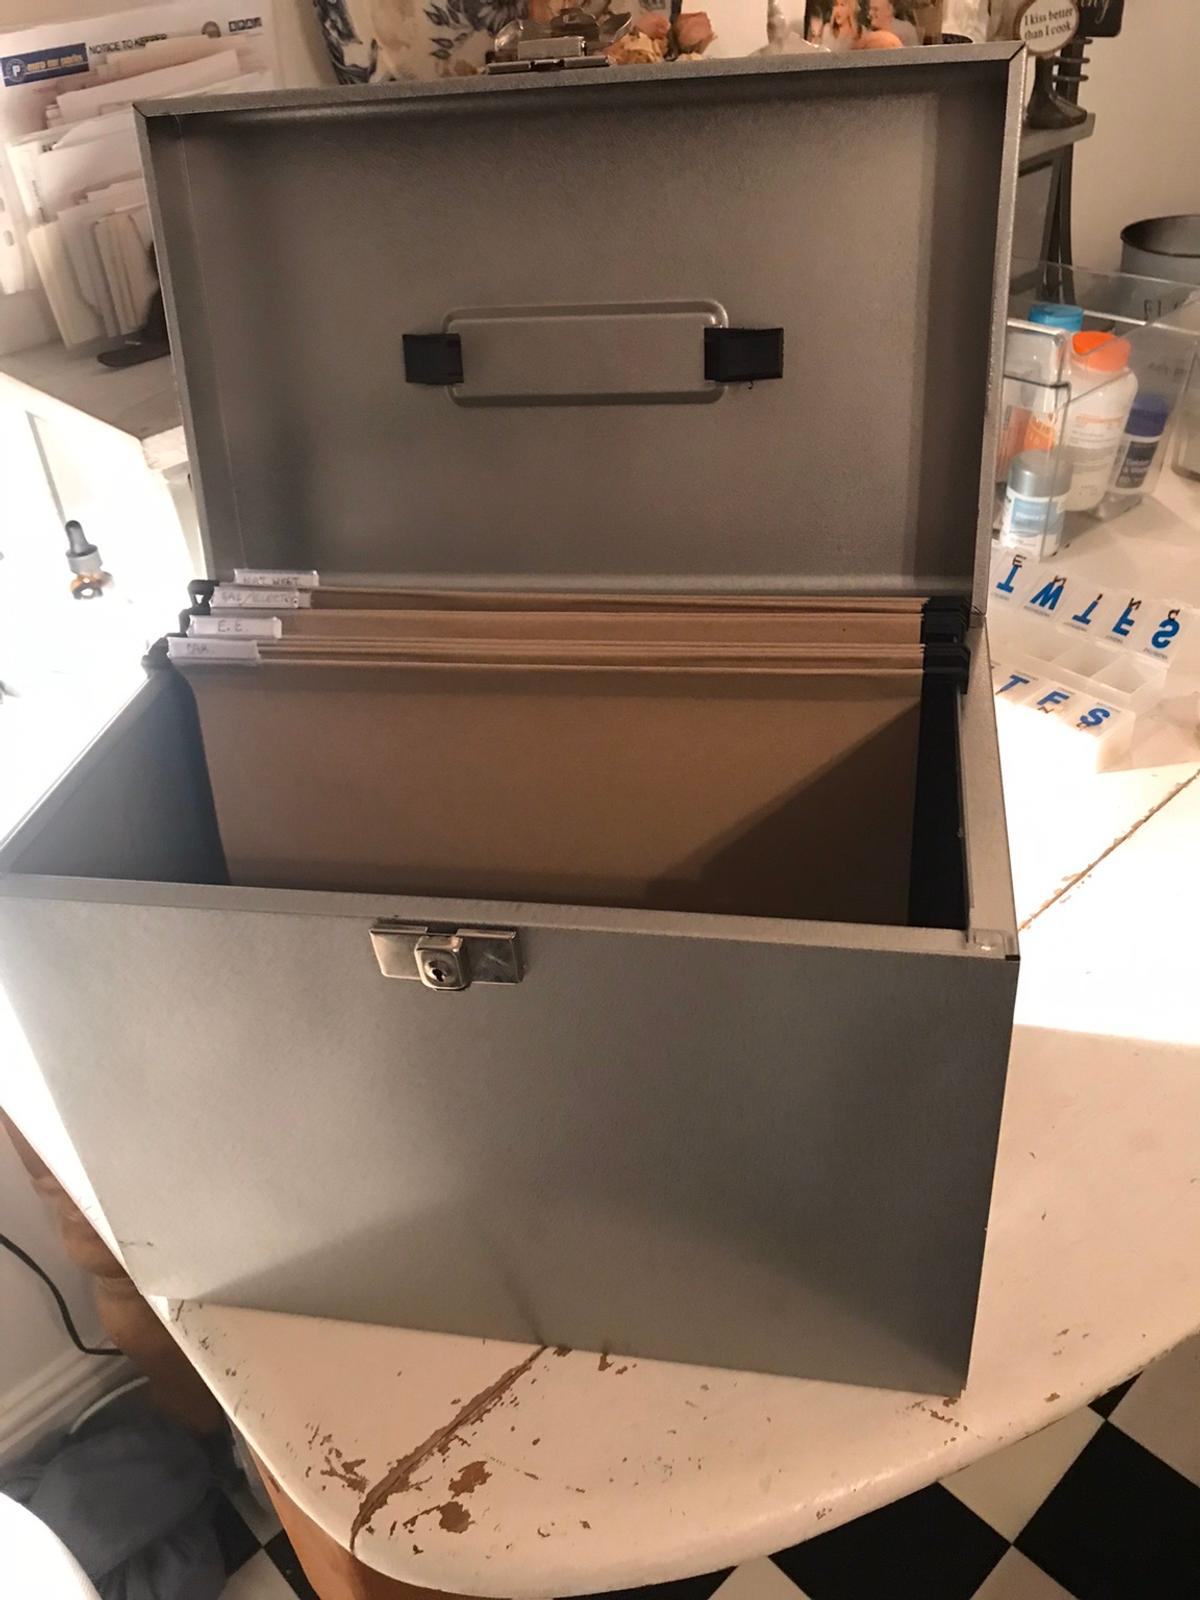 Not used as bought a cabinet soon after. In very good condition. Size A4.